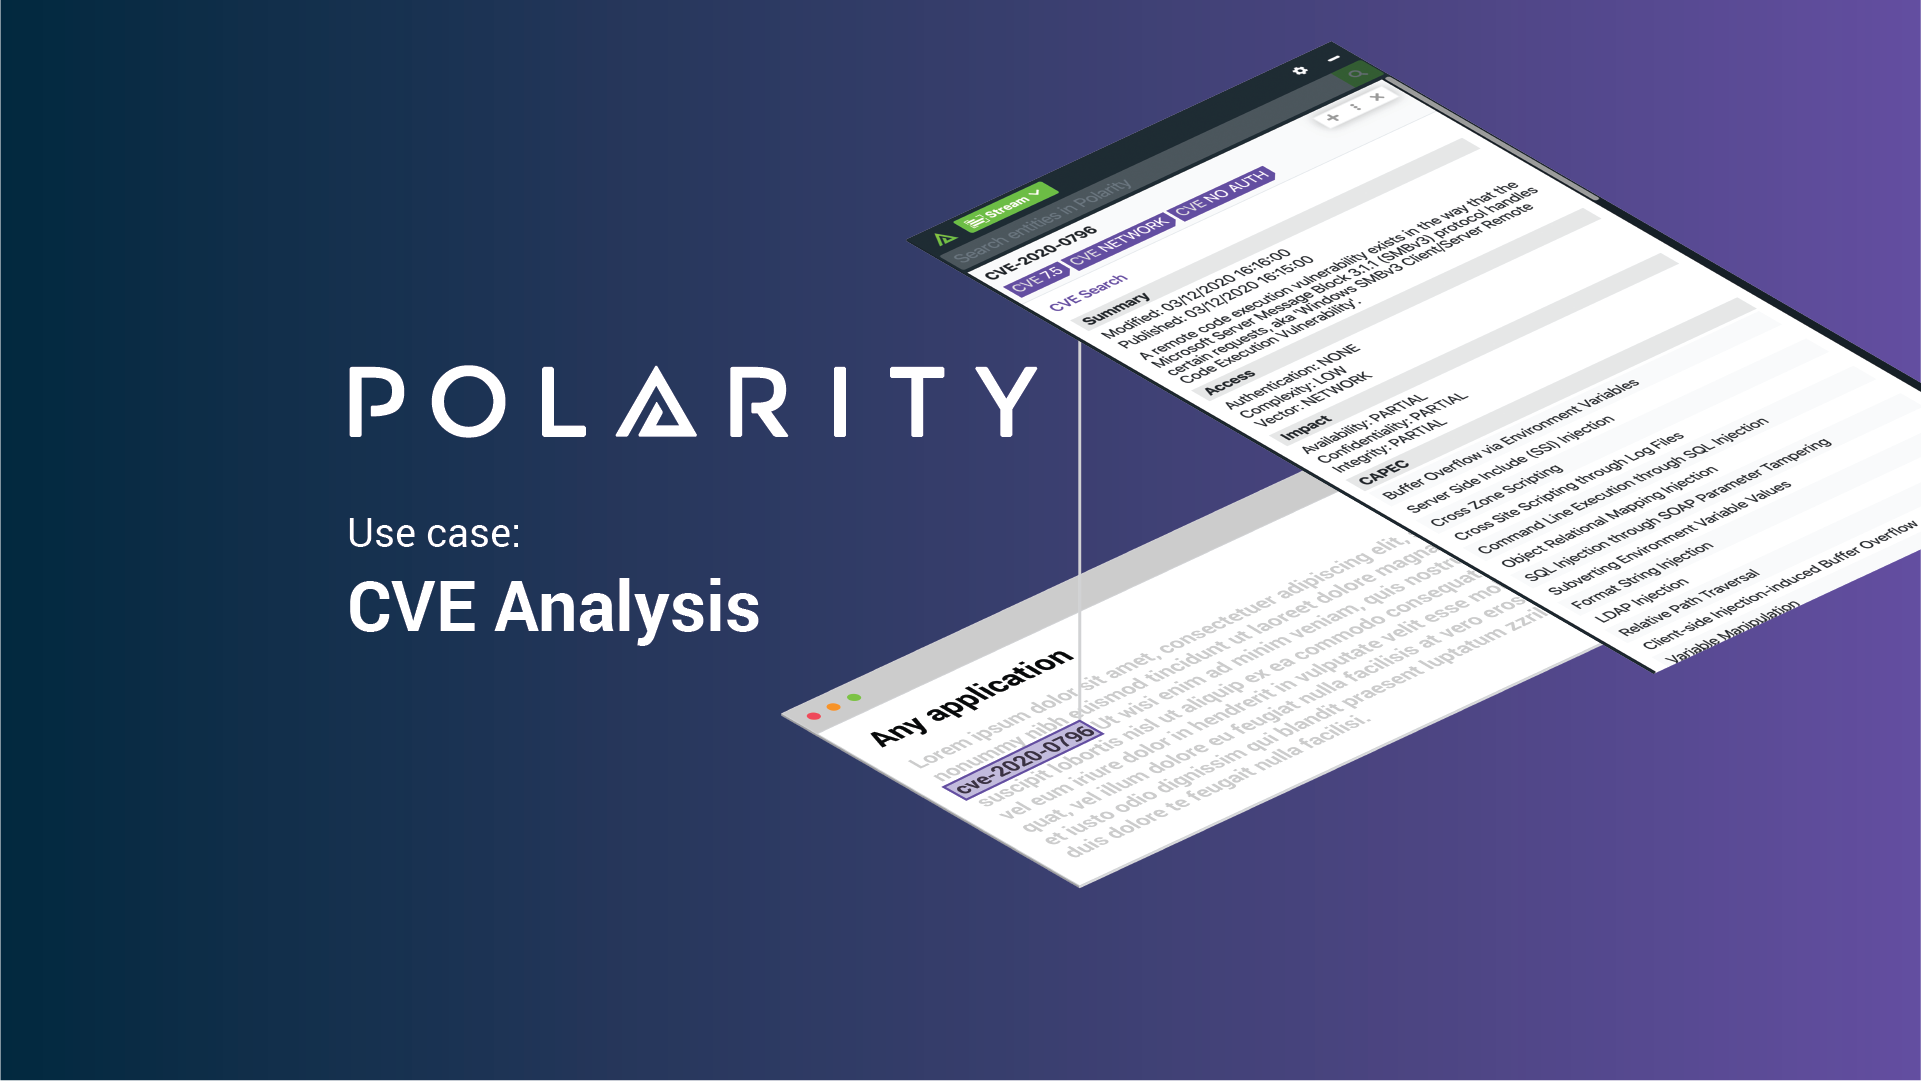 Polarity Use Case: CVE Analysis cover image